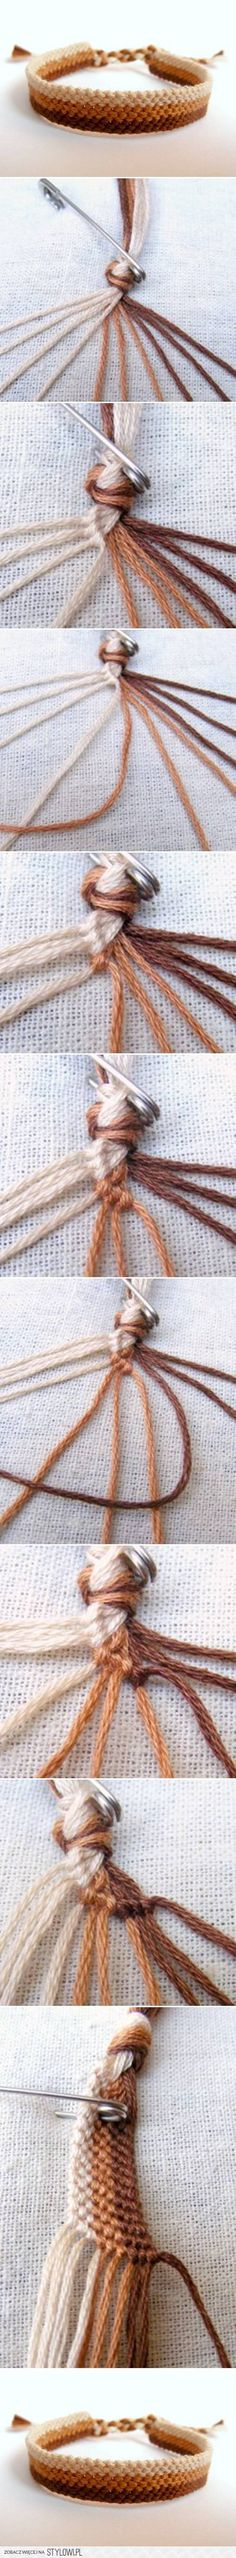 DIY Easy Weave Bracelet DIY Projects | UsefulDIY.com na Stylowi.pl